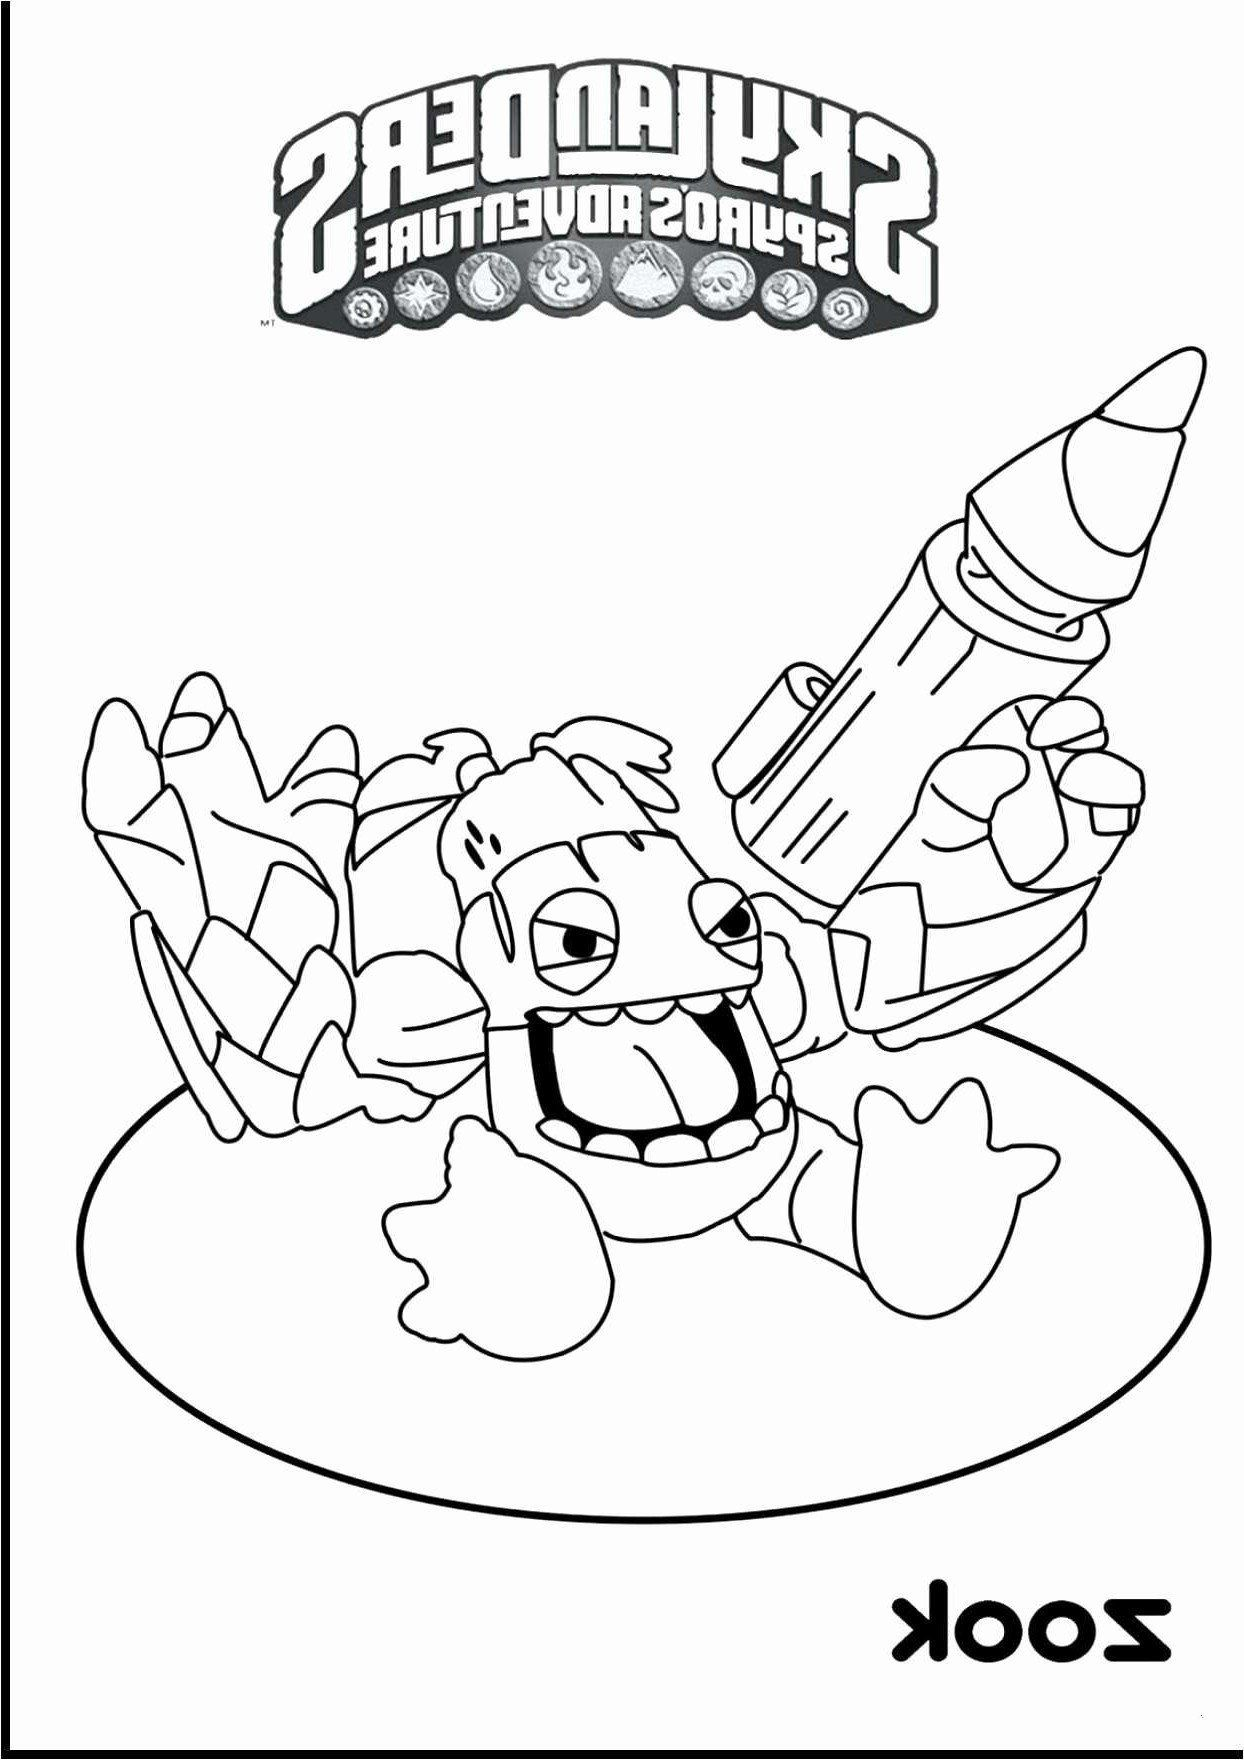 Finding Nemo Coloring Pages New Findet Nemo Ausmalbilder